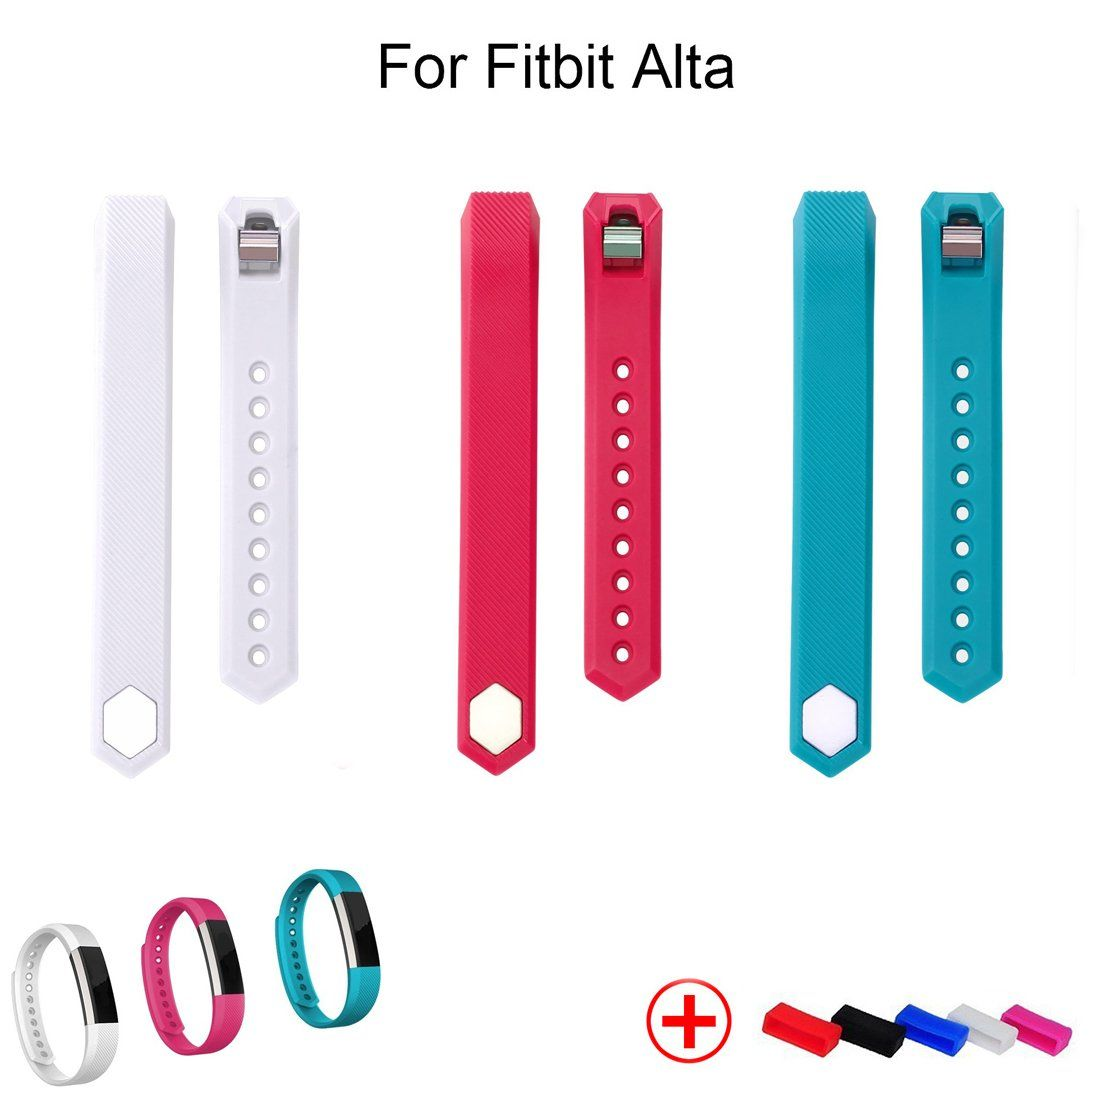 Geak Fitbit Alta Classic Accessory Replacement Bands with Metal Clasp and Fasteners Ring - Large - White Rose and Lake Blue, Pack of 3. Size Chart: Large Size 6.7-8.1 Inches wrist, Small Size 5.5-6.7 Inchs wrist. Classic colors to change your look in an instant. Comfortable, durable materials make these bands your go-to accessory through exercise, sweat, sleep and beyond. Personalized design for Fibbit Alta, good replace of your original Fitbit Alta Band. NOTE:No Tracker or other...